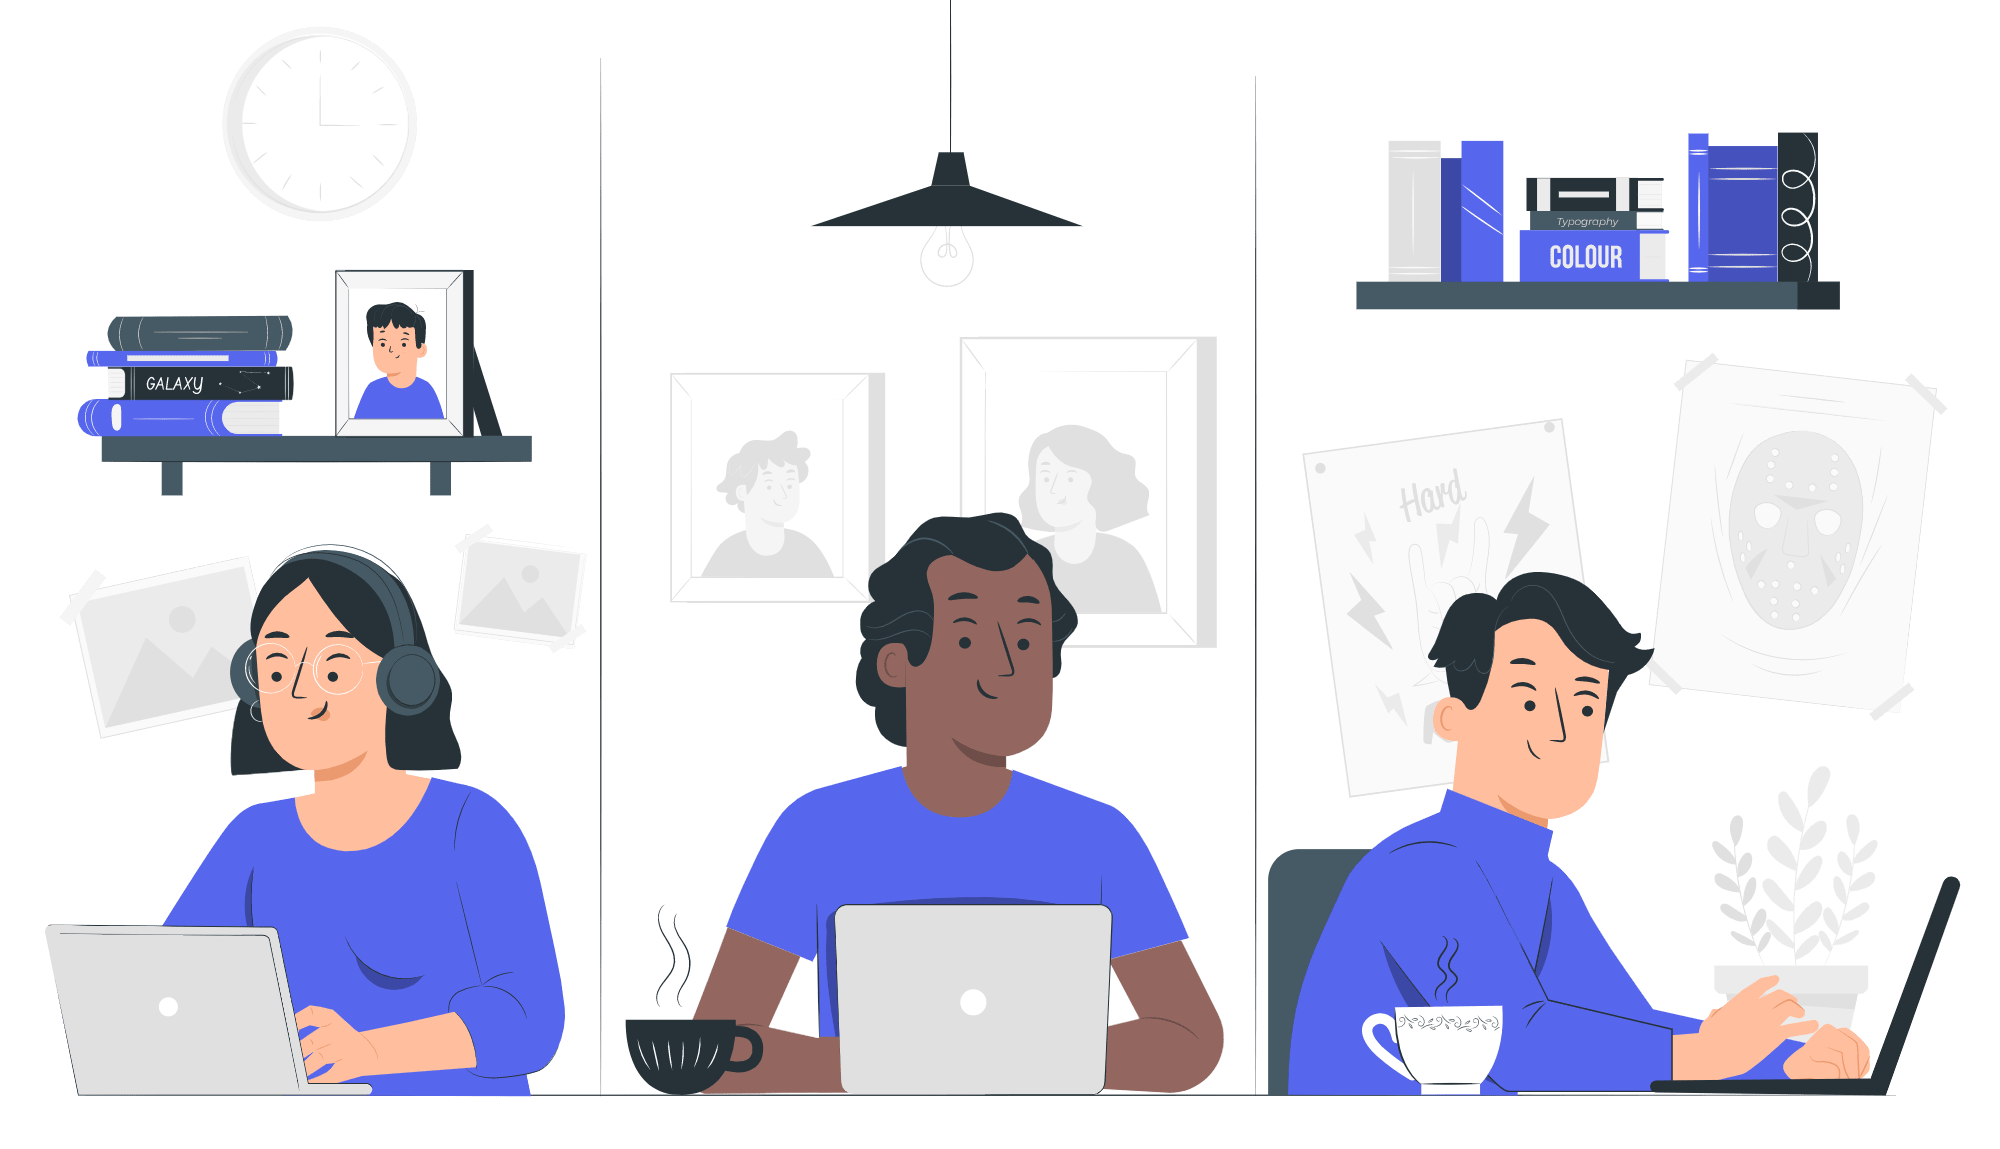 Webconferencing is one of the common types of meetings in an organization to collaborate with employees